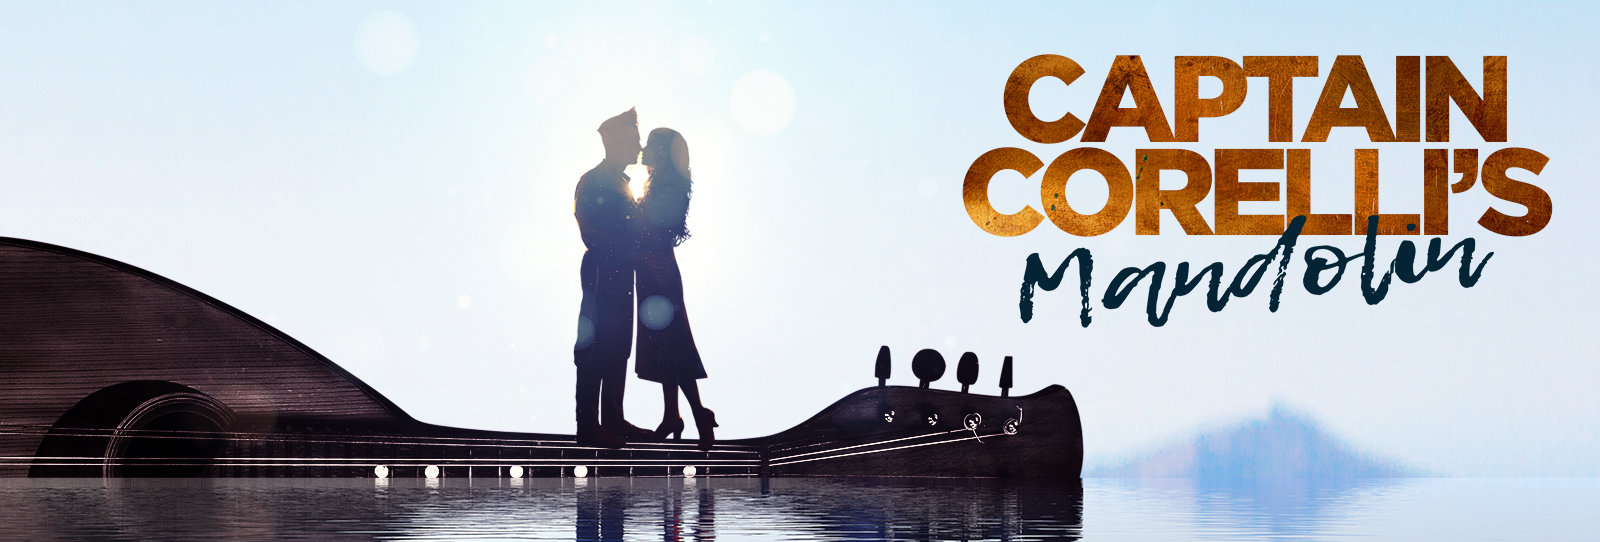 Captain Corelli's Mandolin to open in the West End!